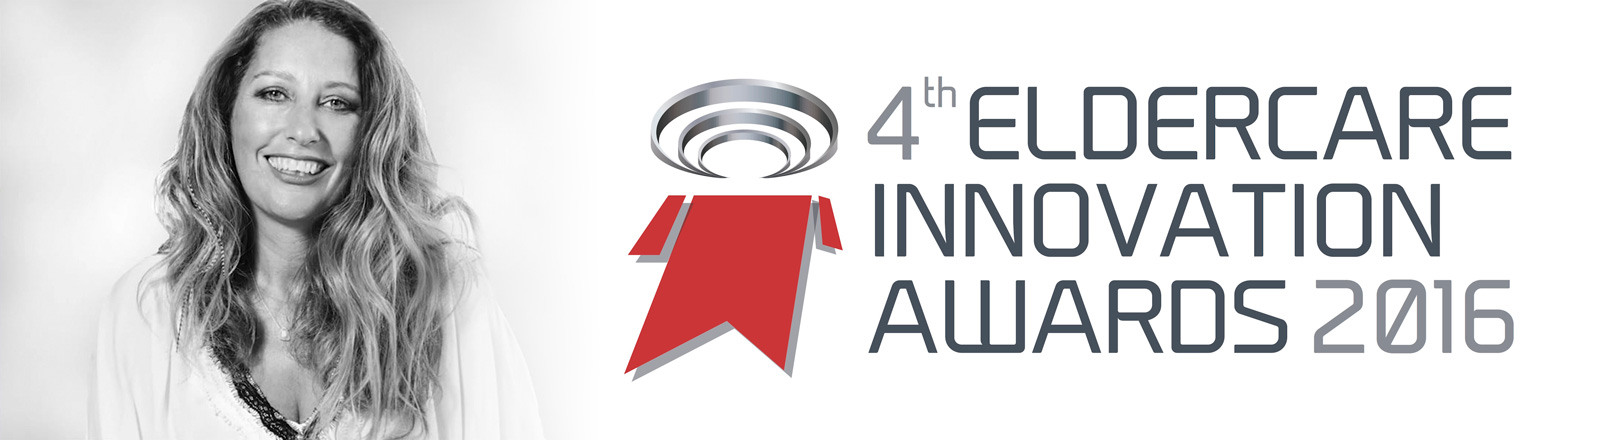 Evette_4th-APAC-Award-wide